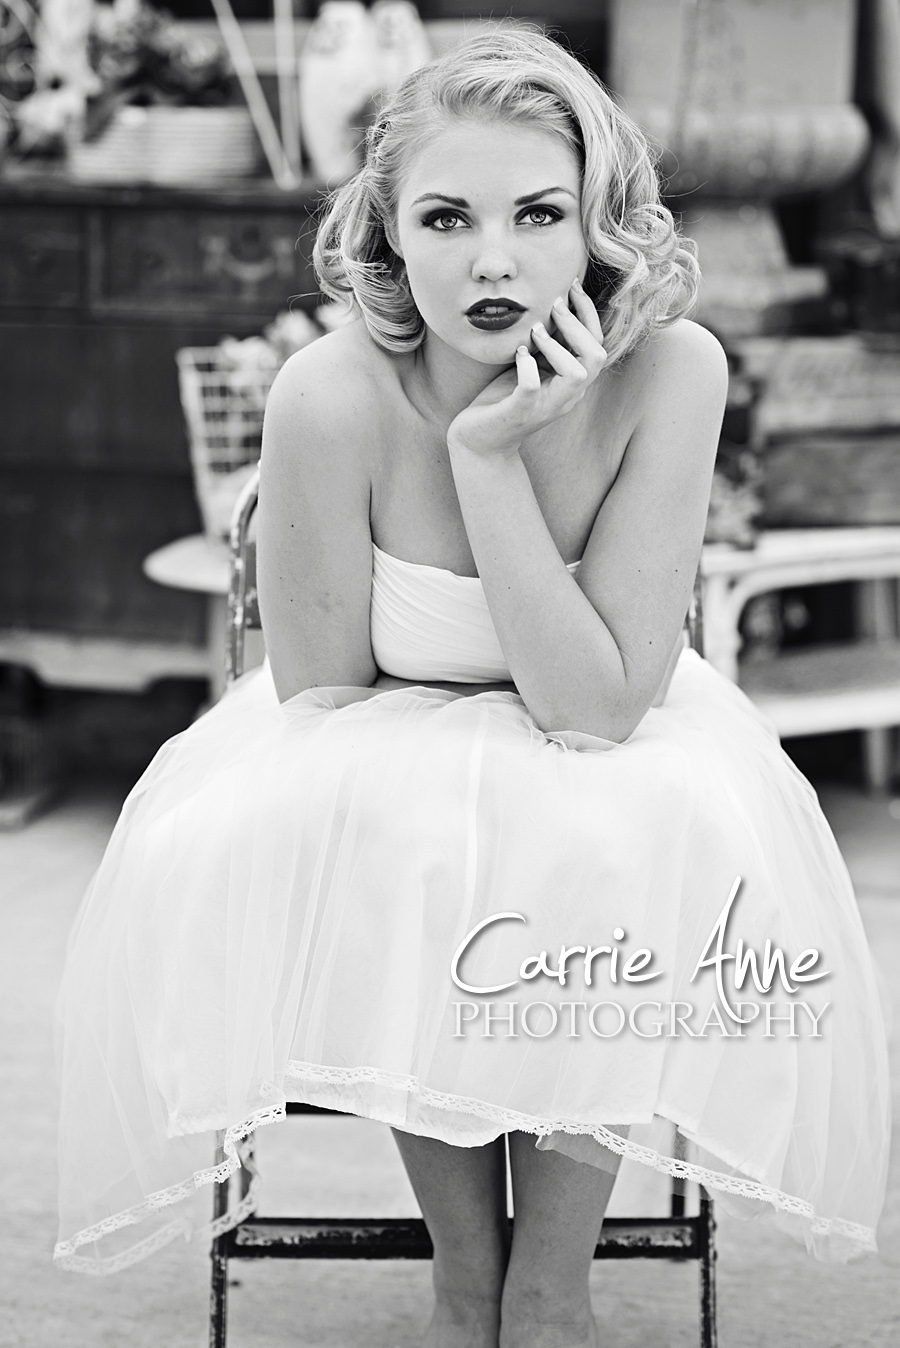 Carrie Anne Photography-Marilyn Monroe Session